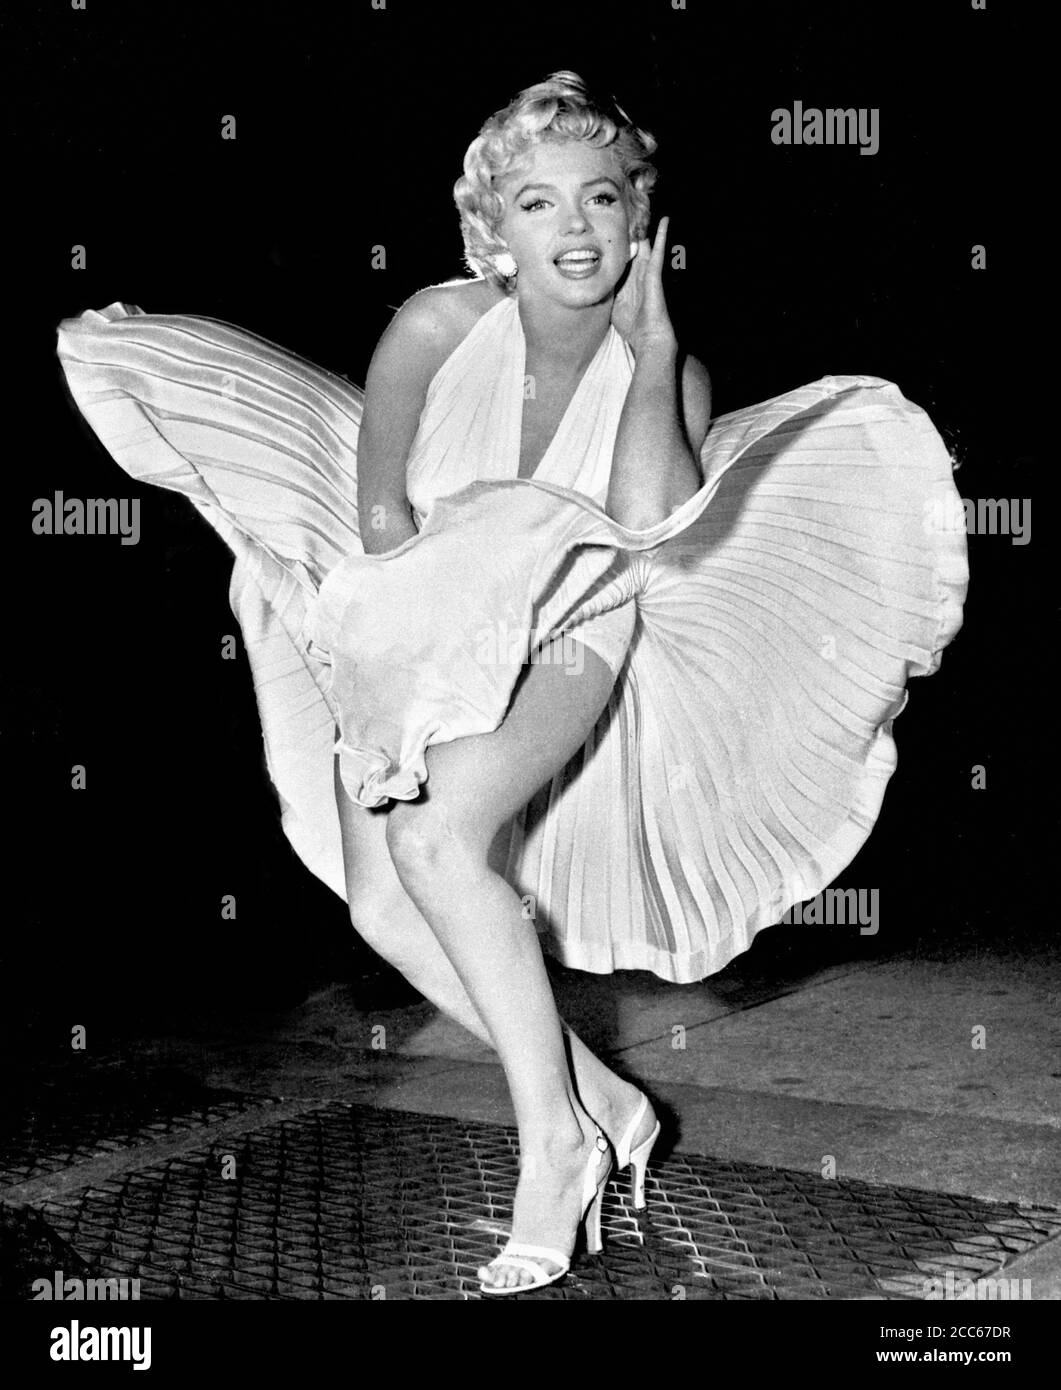 Marilyn Monroe High Resolution Stock Photography and Images - Alamy